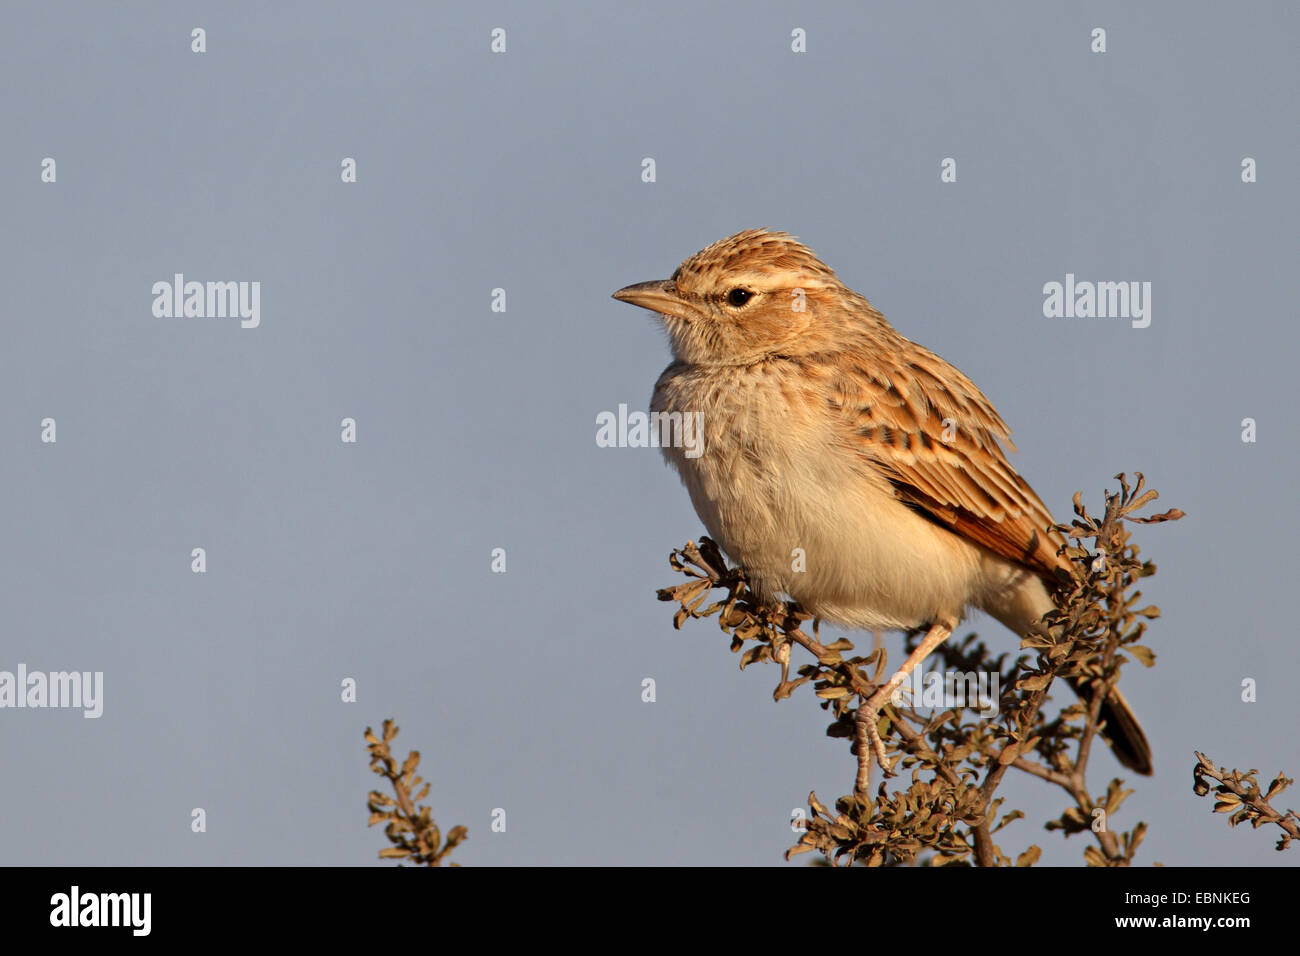 fawn-coloured lark (Mirafra africanoides), sitting on a bush, South Africa, Kgalagadi Transfrontier National Park - Stock Image